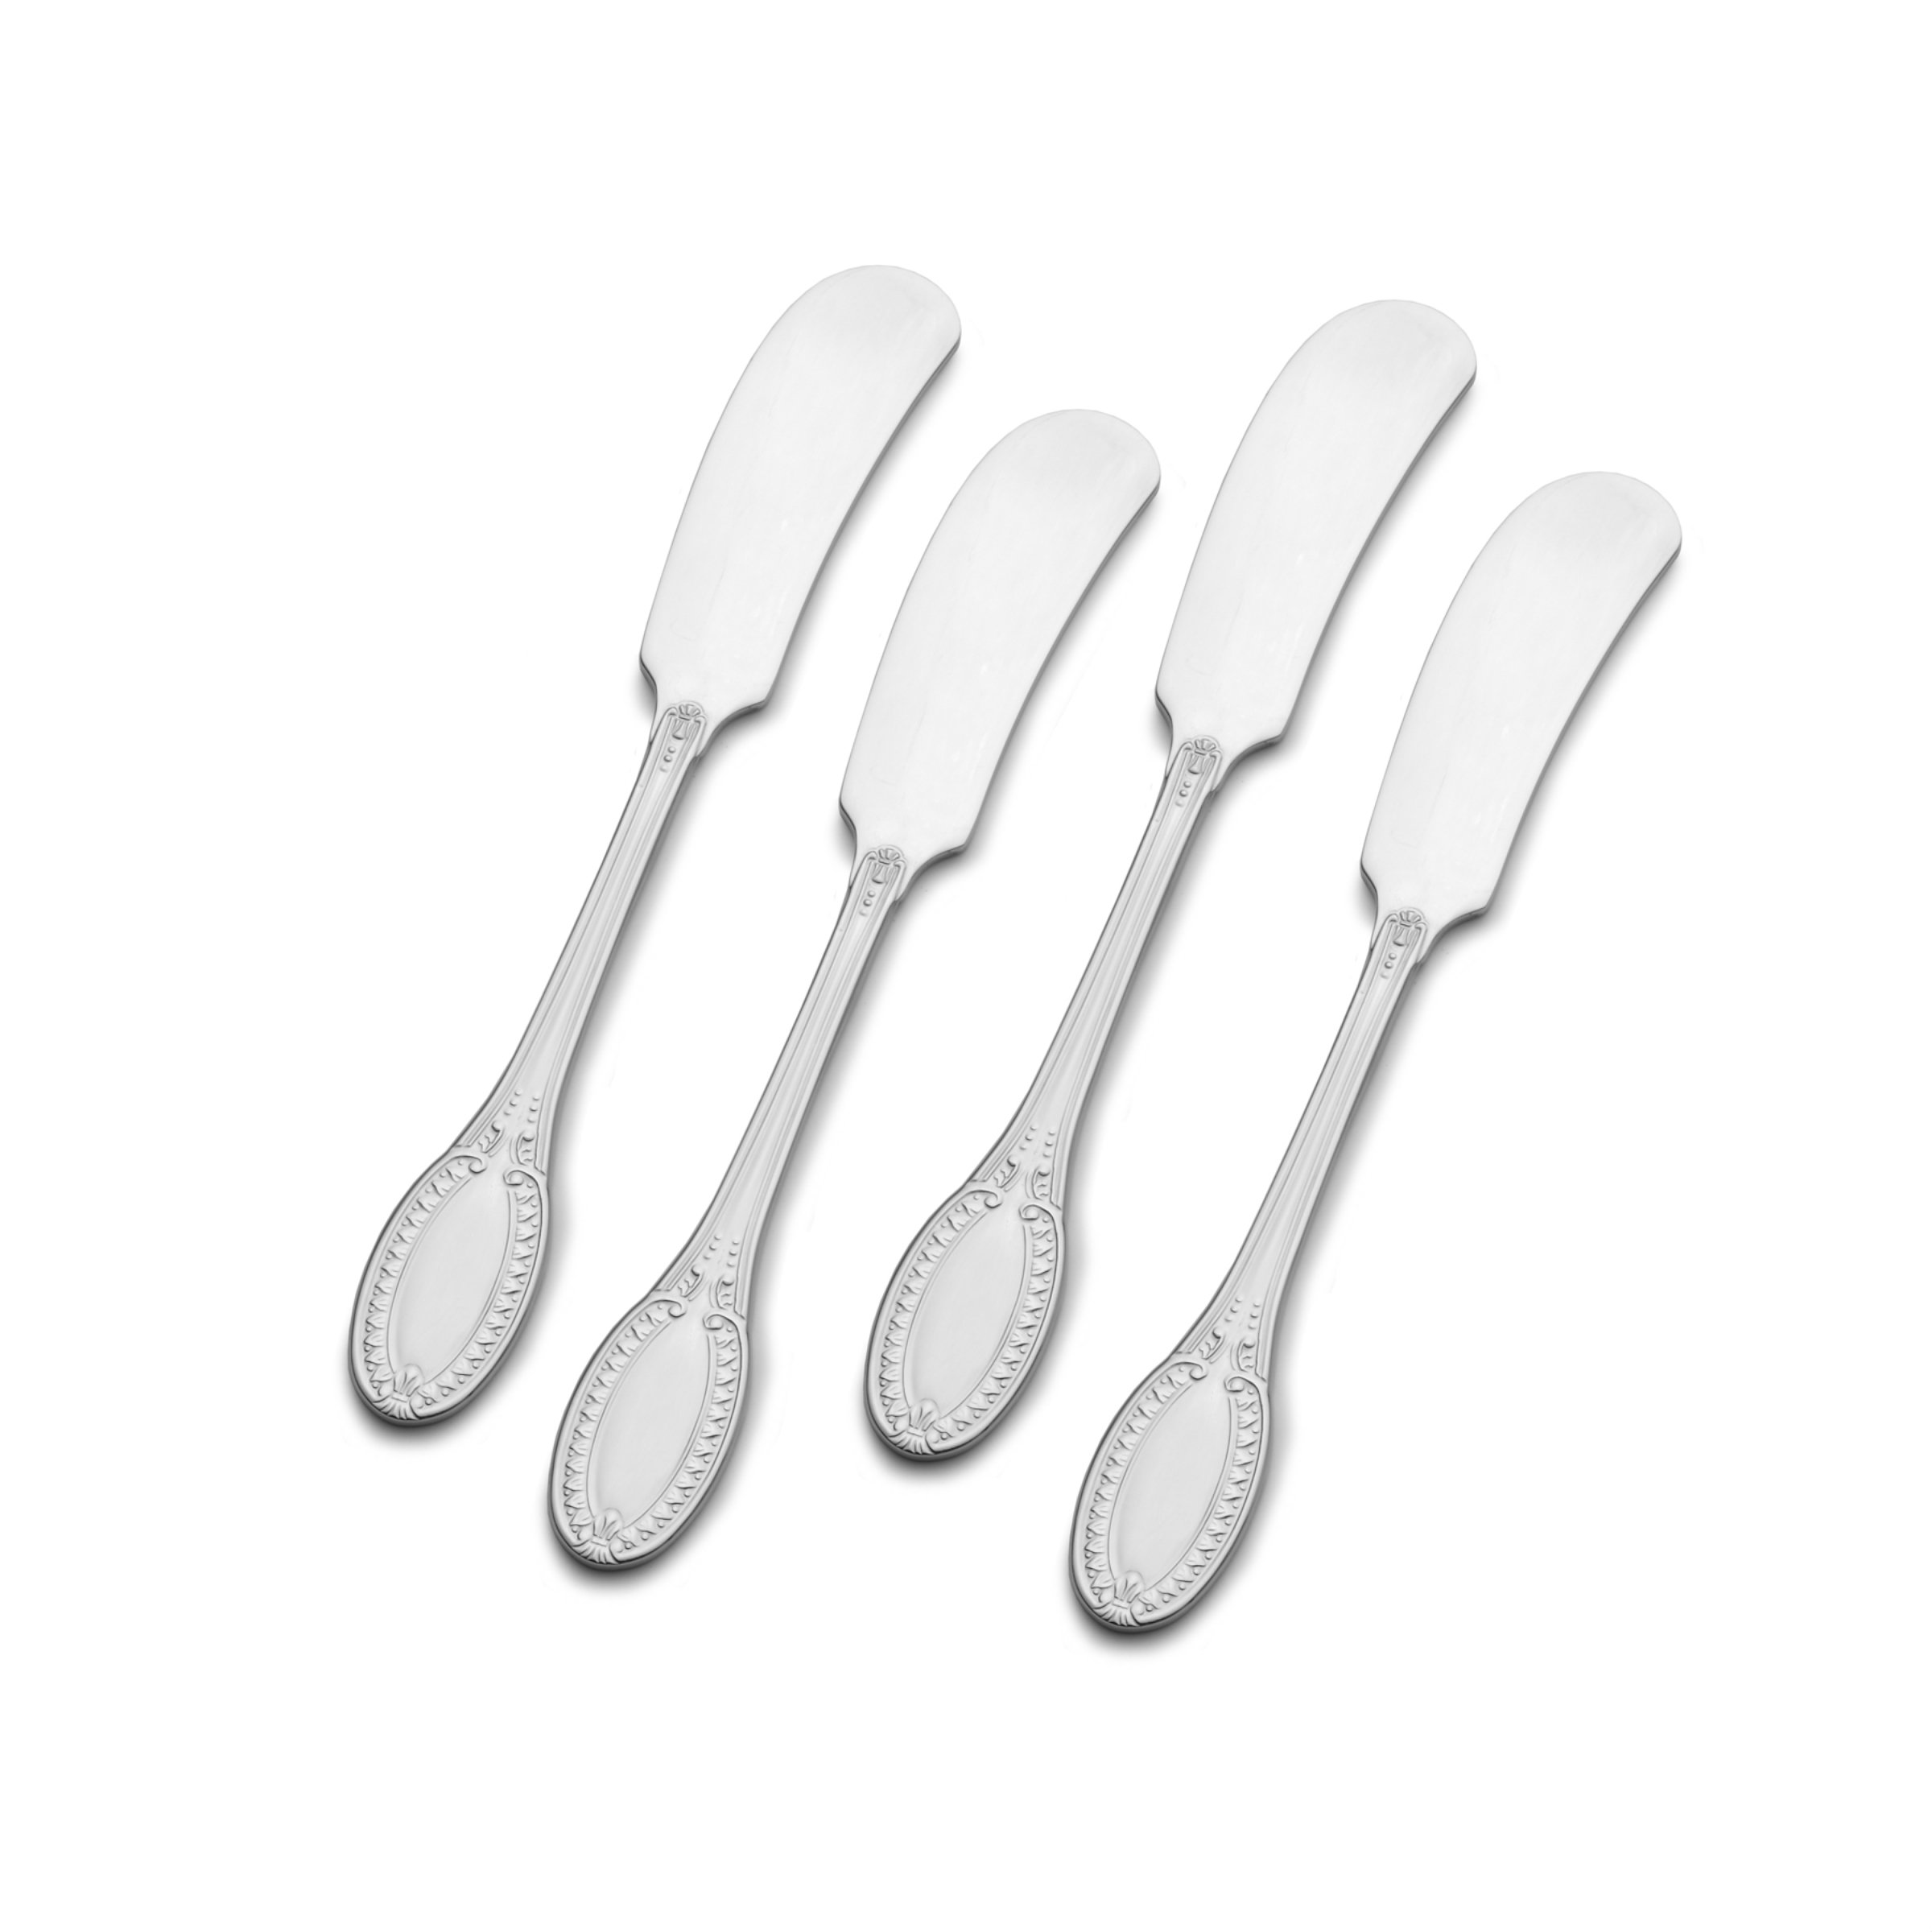 Wallace Hotel Spreaders, Set of 4